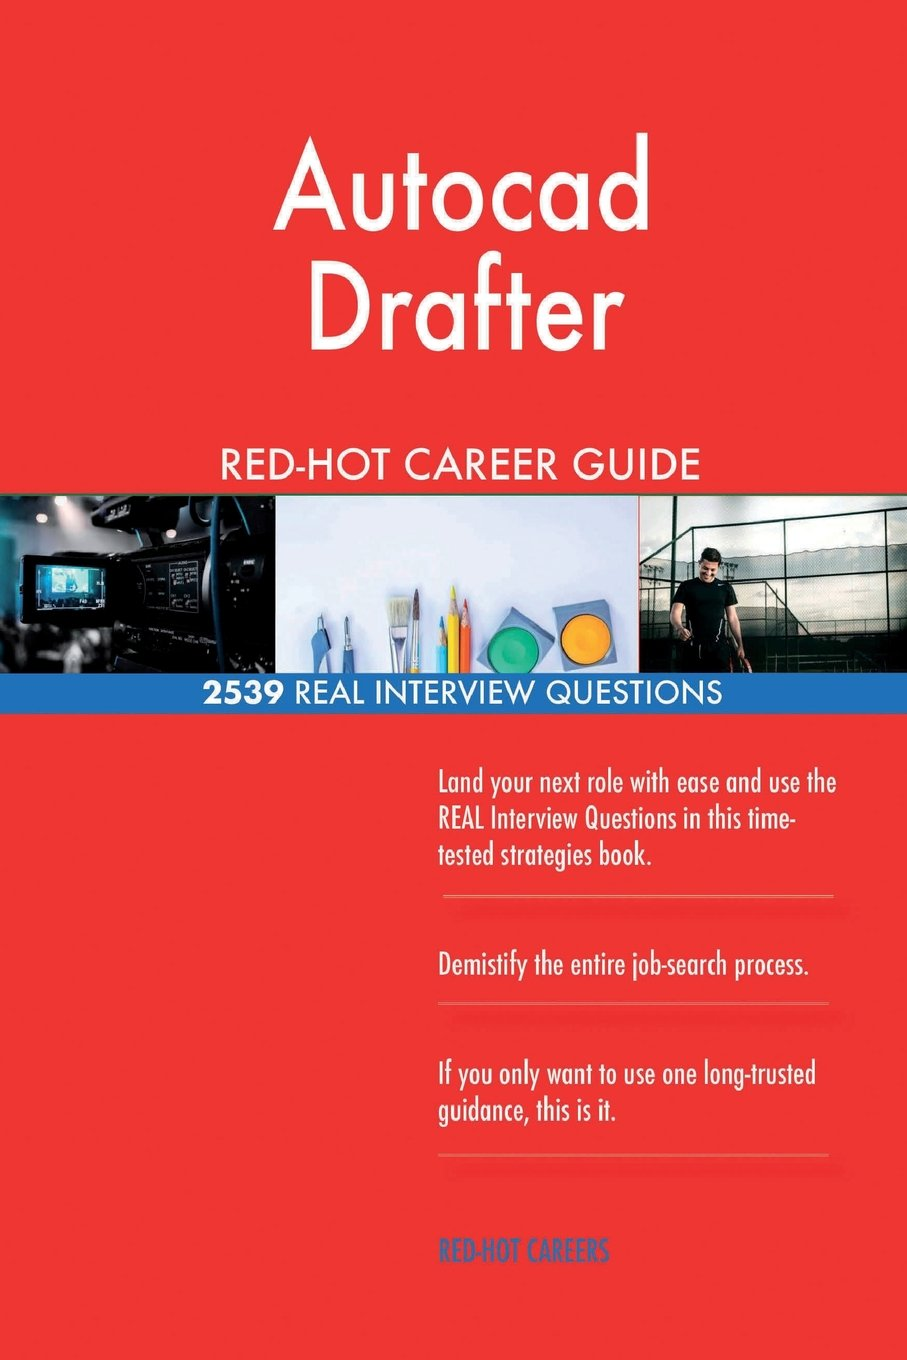 Autocad Drafter RED-HOT Career Guide